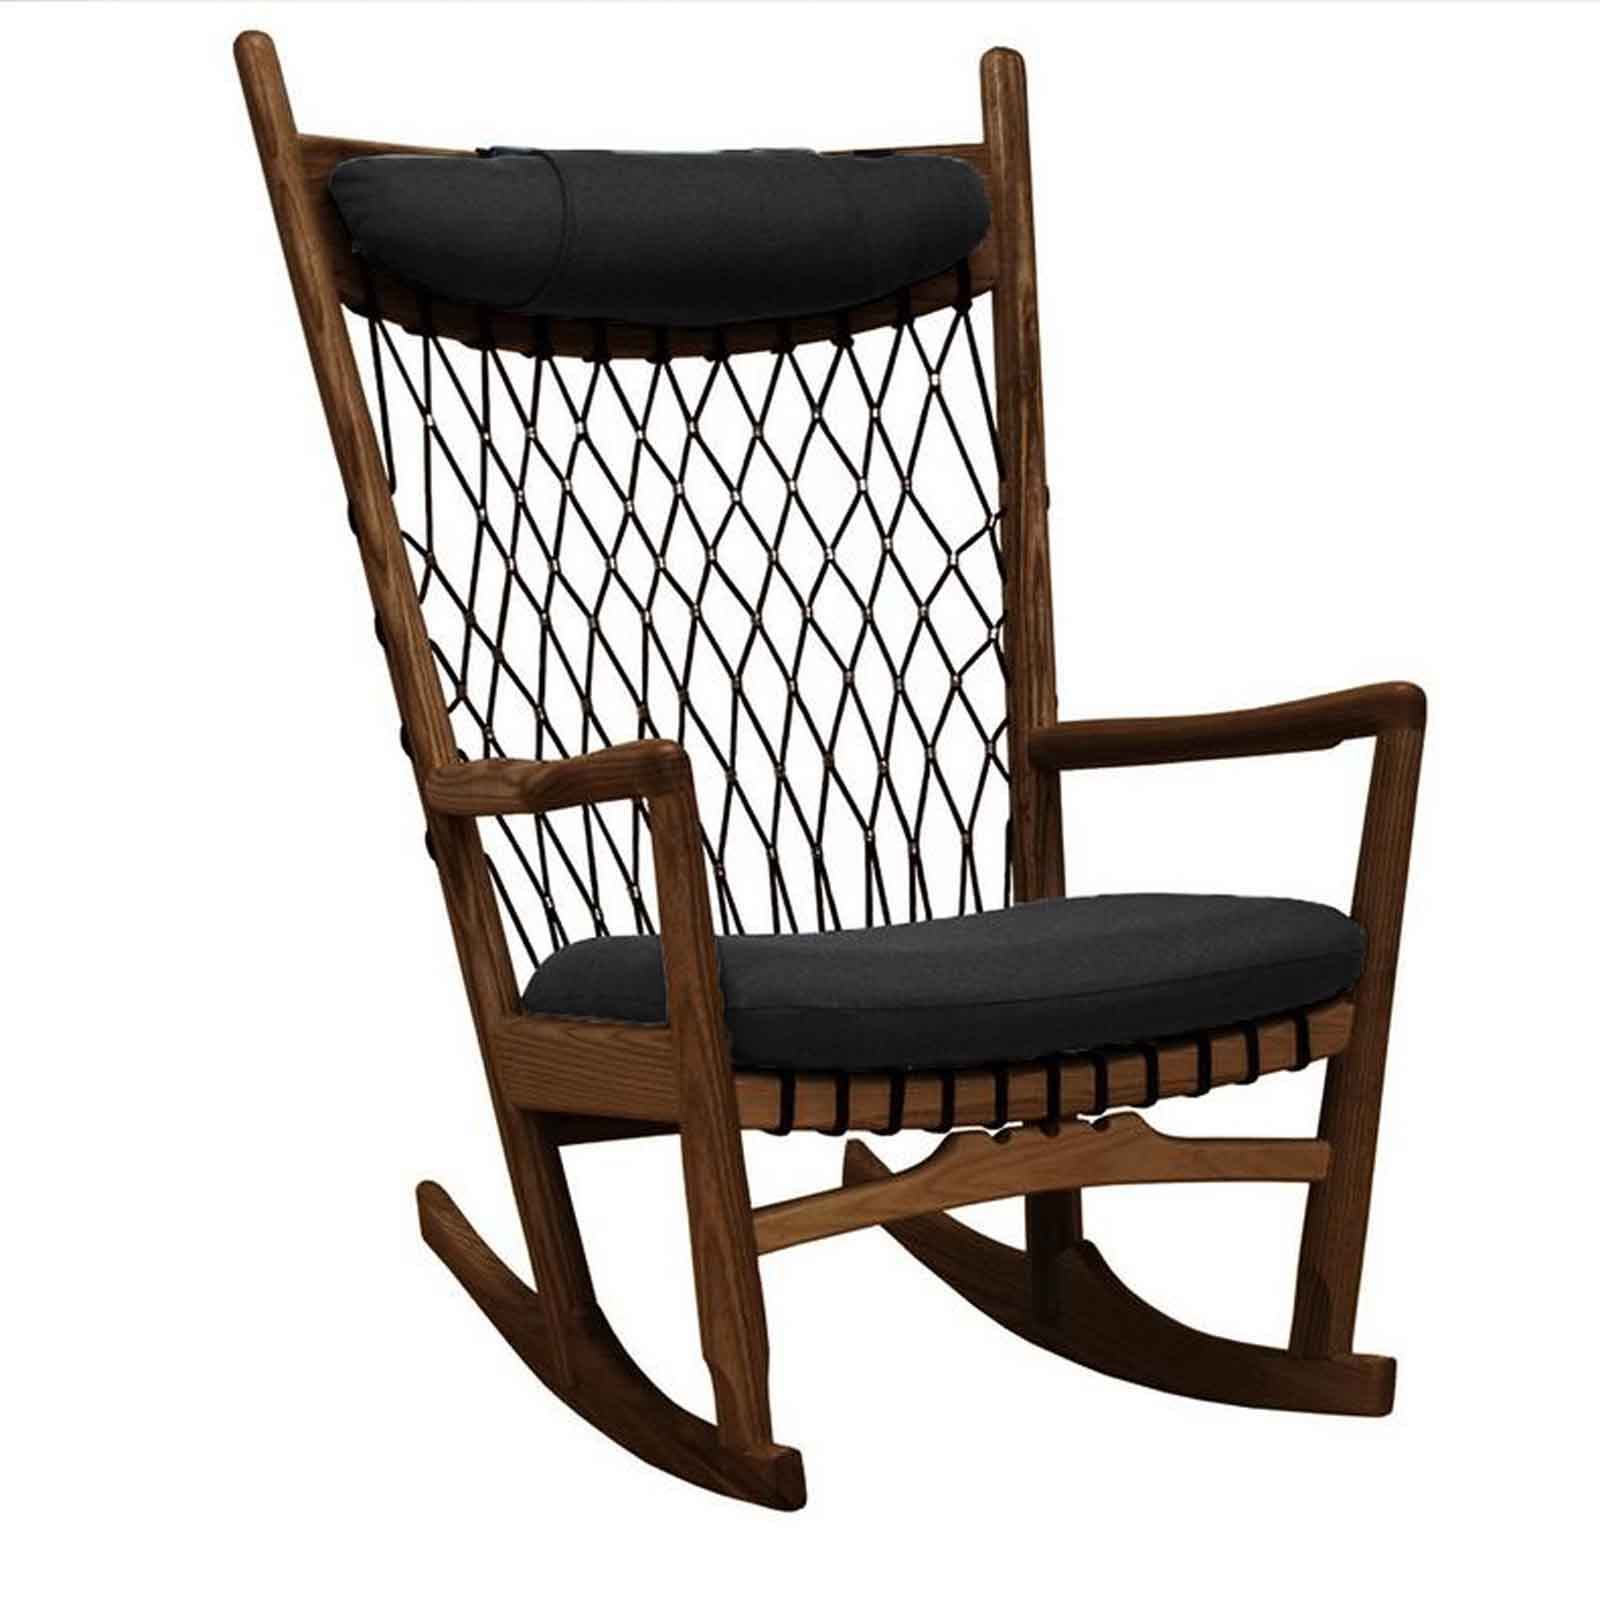 Solid Wood and Cord Lounge Chair  SF-019A-W - ebarza